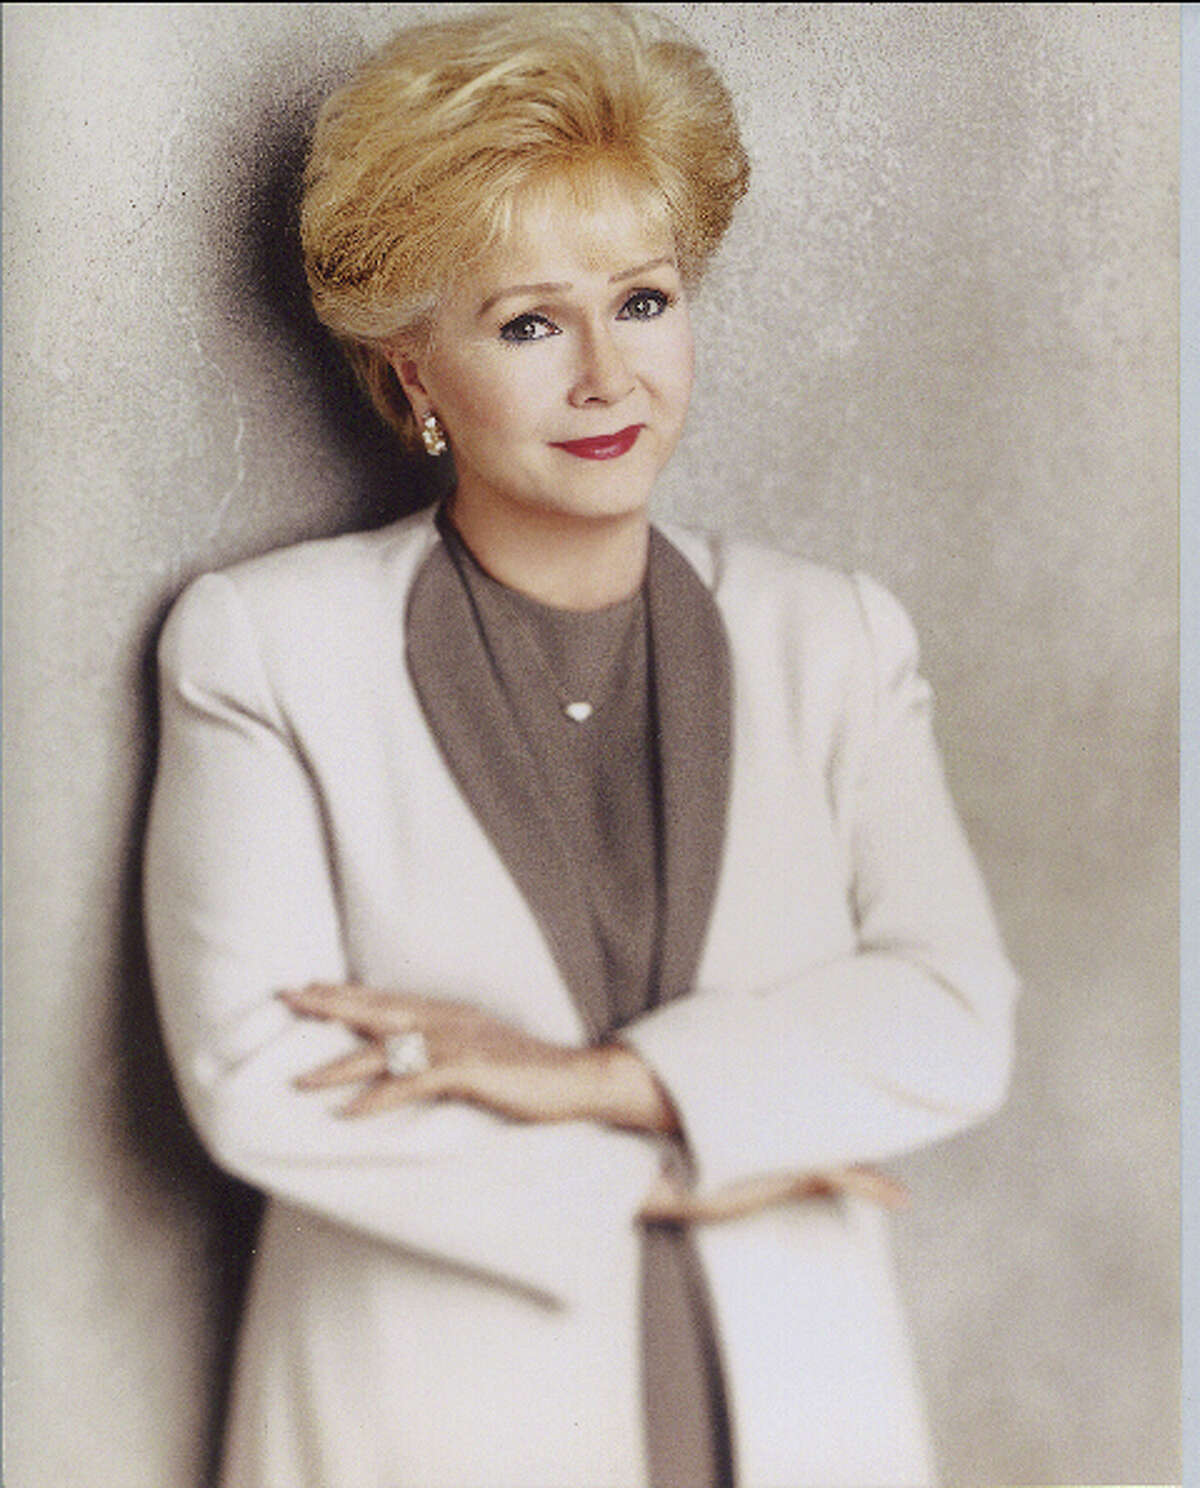 """Veteran actress Debbie Reynolds will talk about her career - and her tabloid-fodder off-screen life - during an """"Inside the Actor's Studio""""-style presentation at Fairfield's Sacred Heart University on Sunday, April 10."""